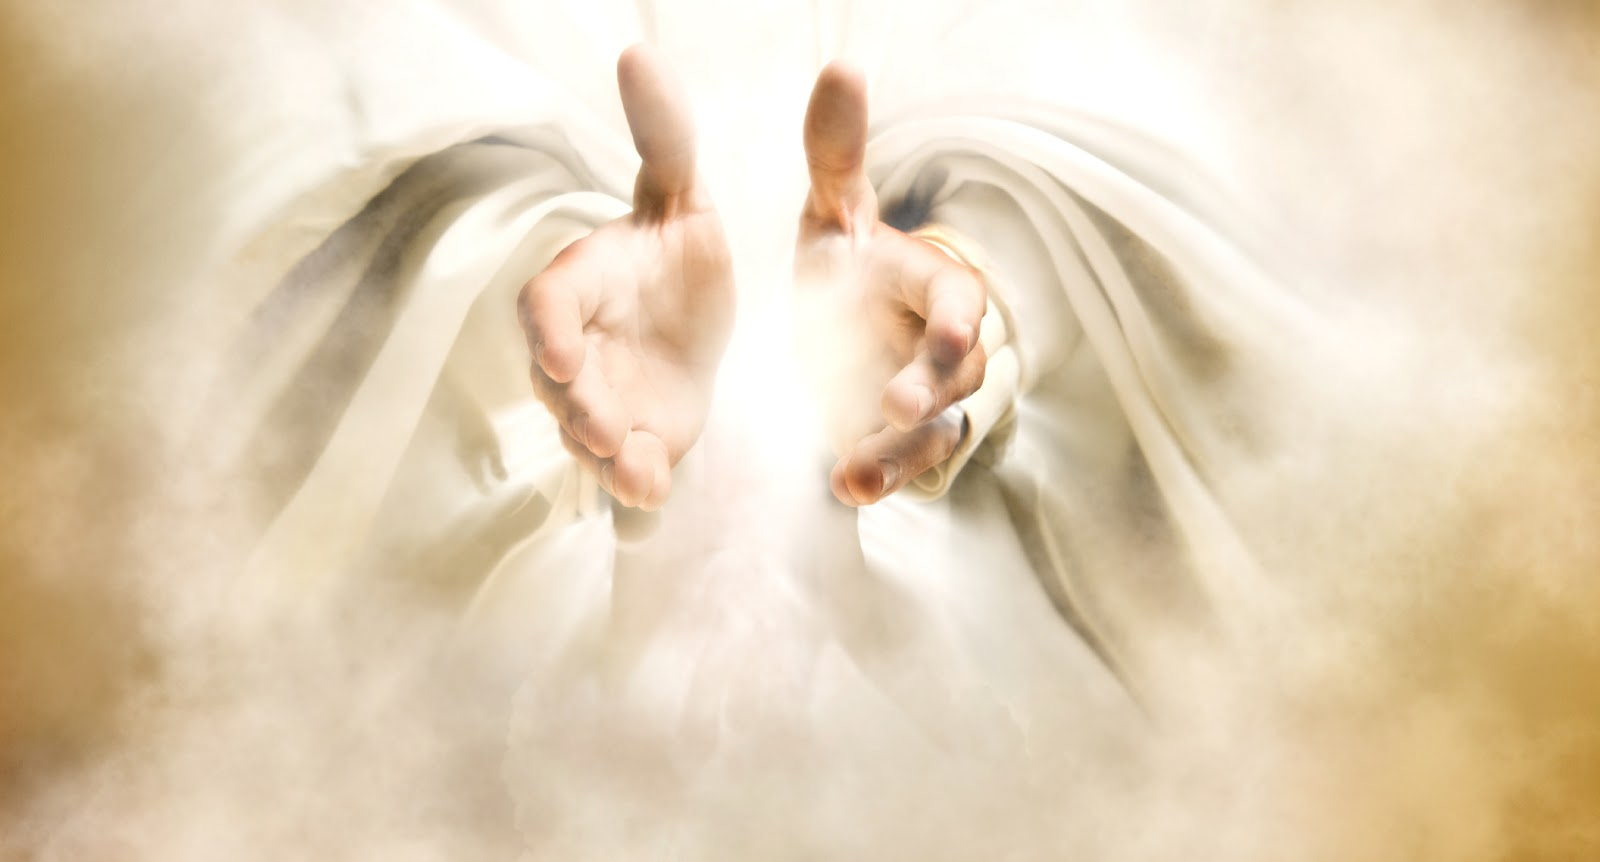 Image result for god's hand reaching down from heaven